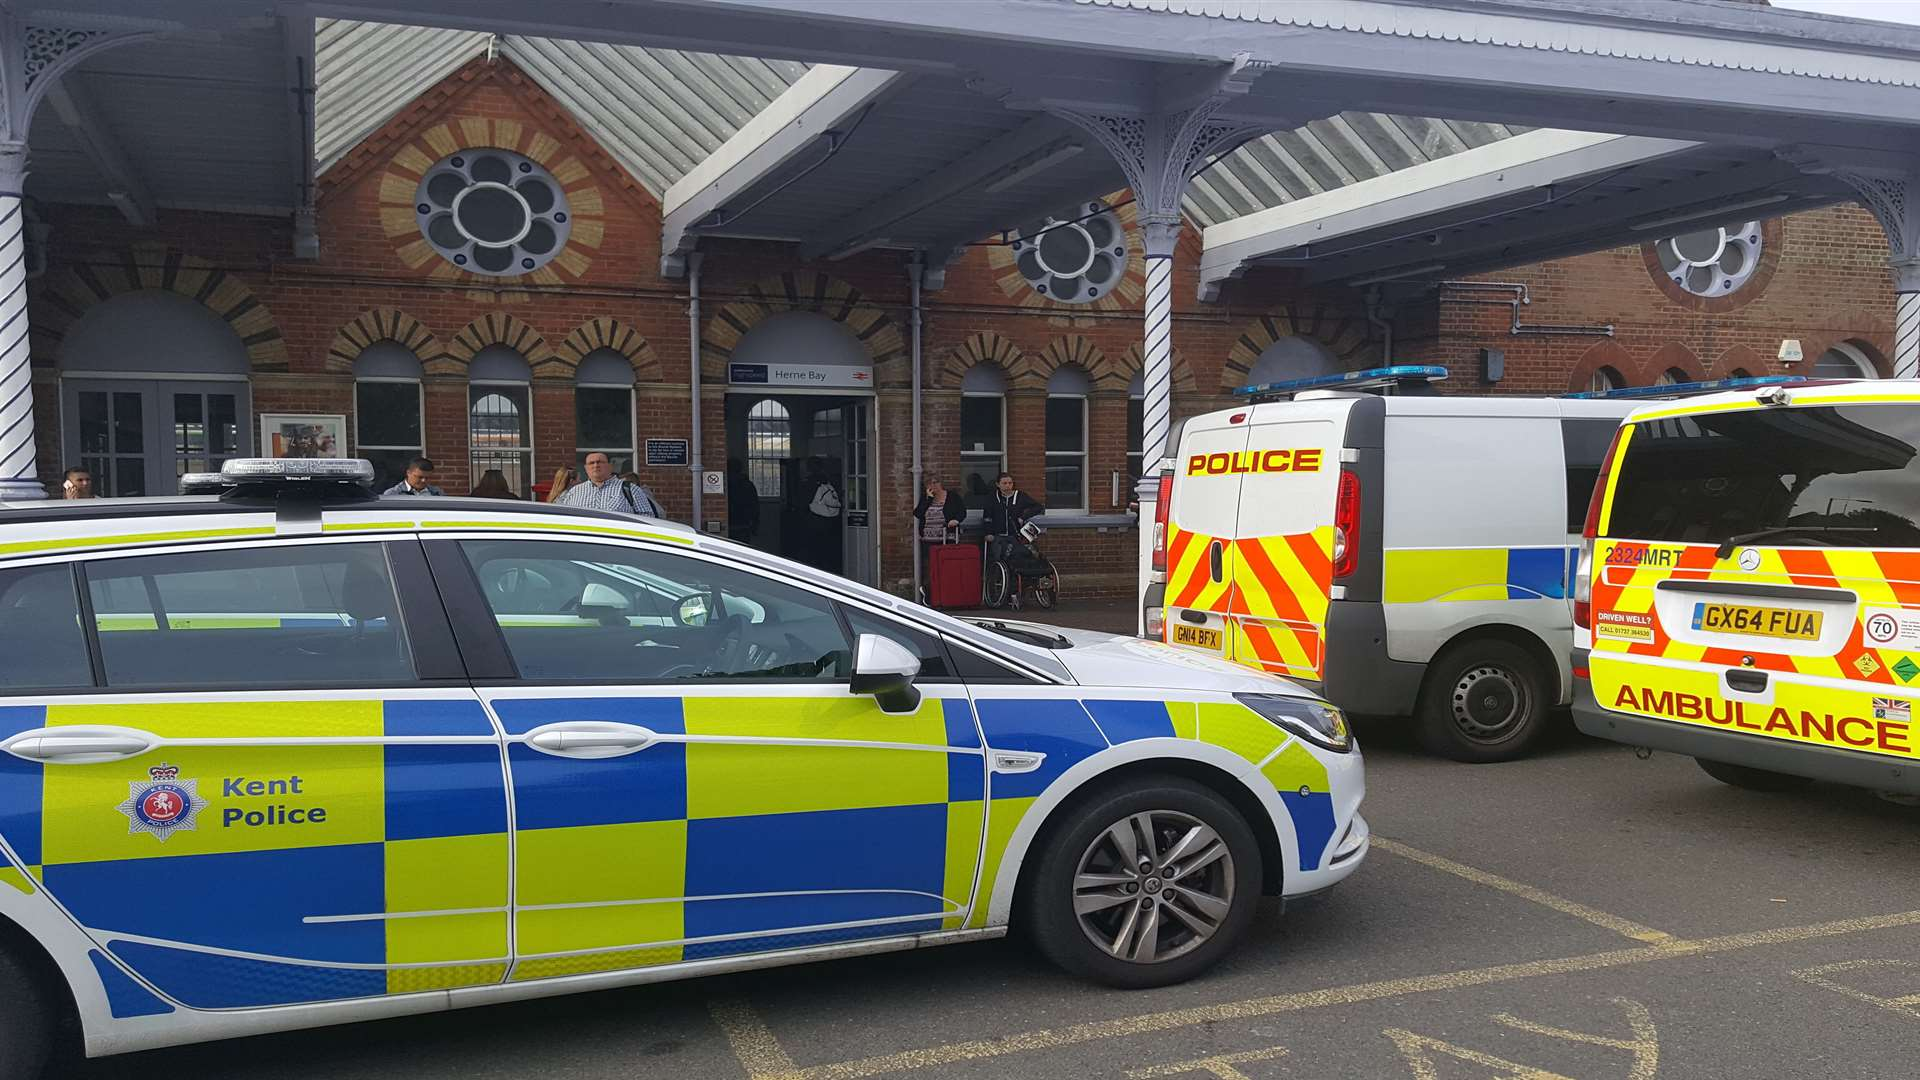 Police were called to the train station just before 7am